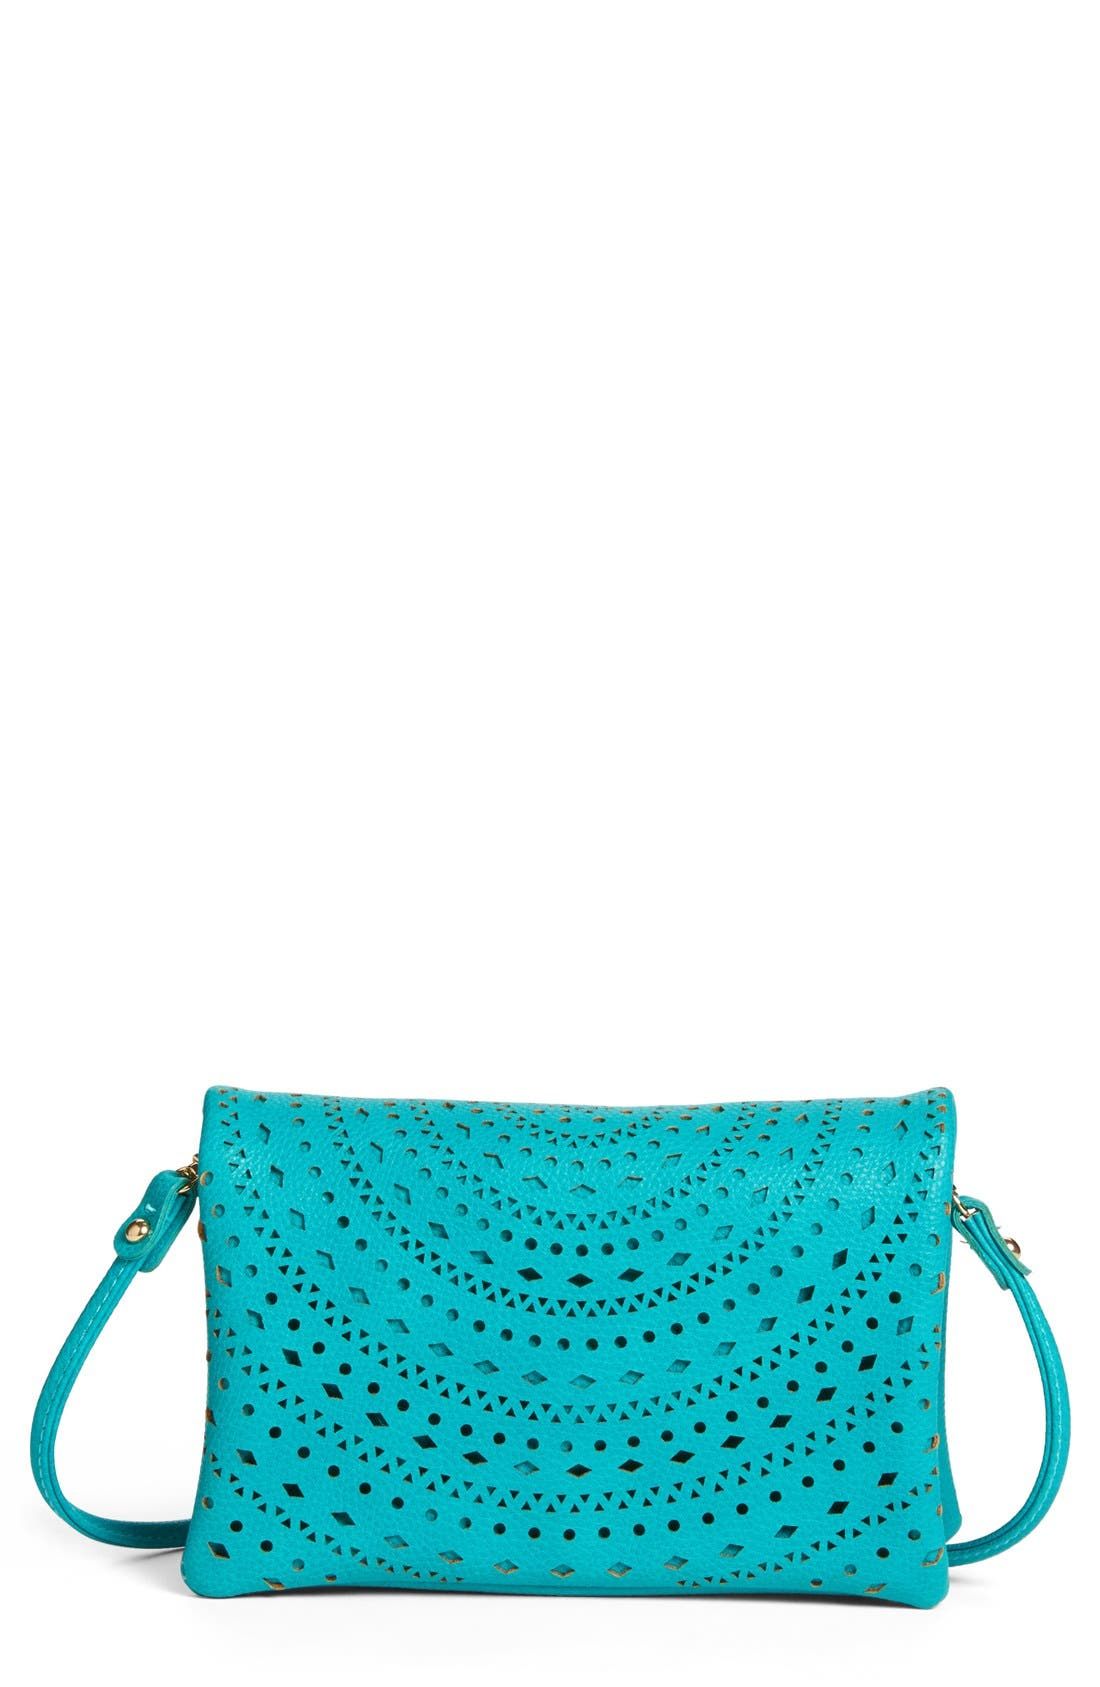 Main Image - Street Level Perforated Faux Leather Mini Crossbody Bag